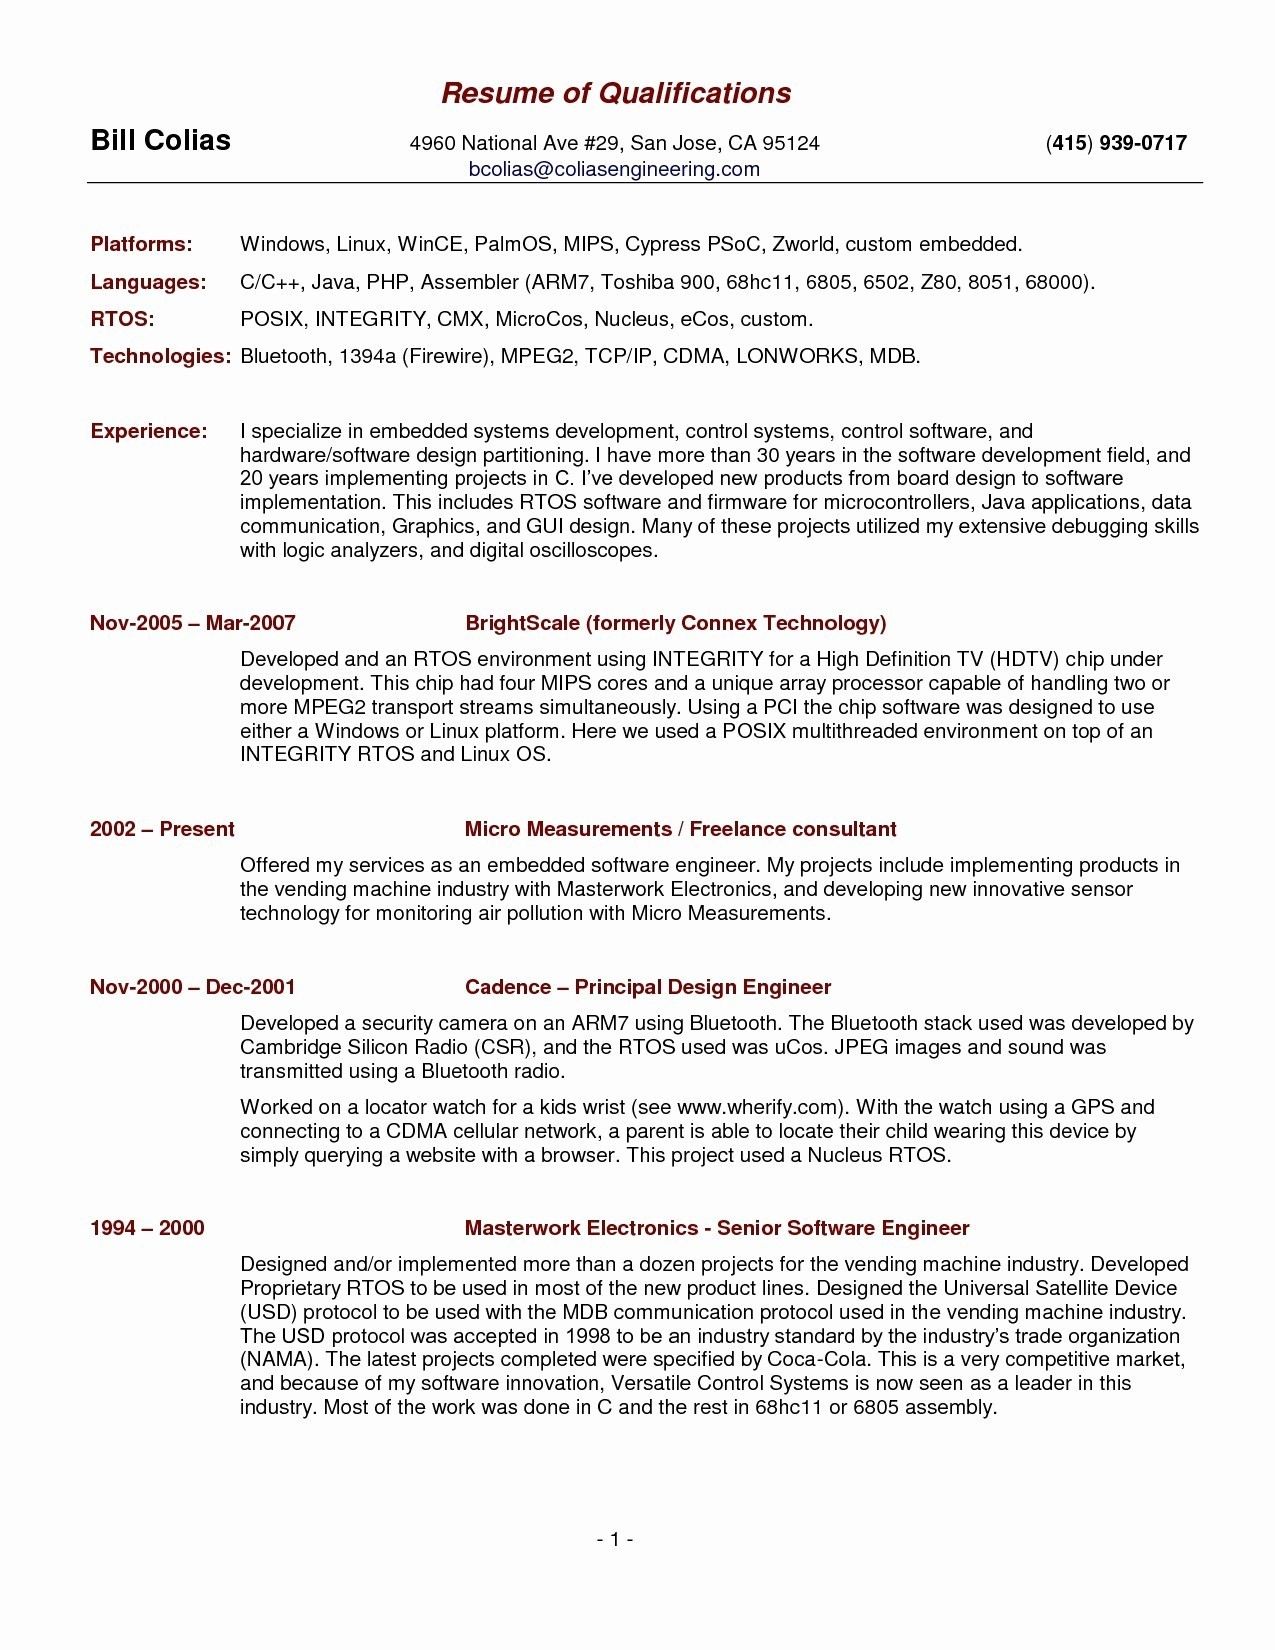 mba resume template example-Mba Resume Template Fresh Fresh Pr Resume Template Elegant Dictionary Template 0d Archives Mba Resume 1-n